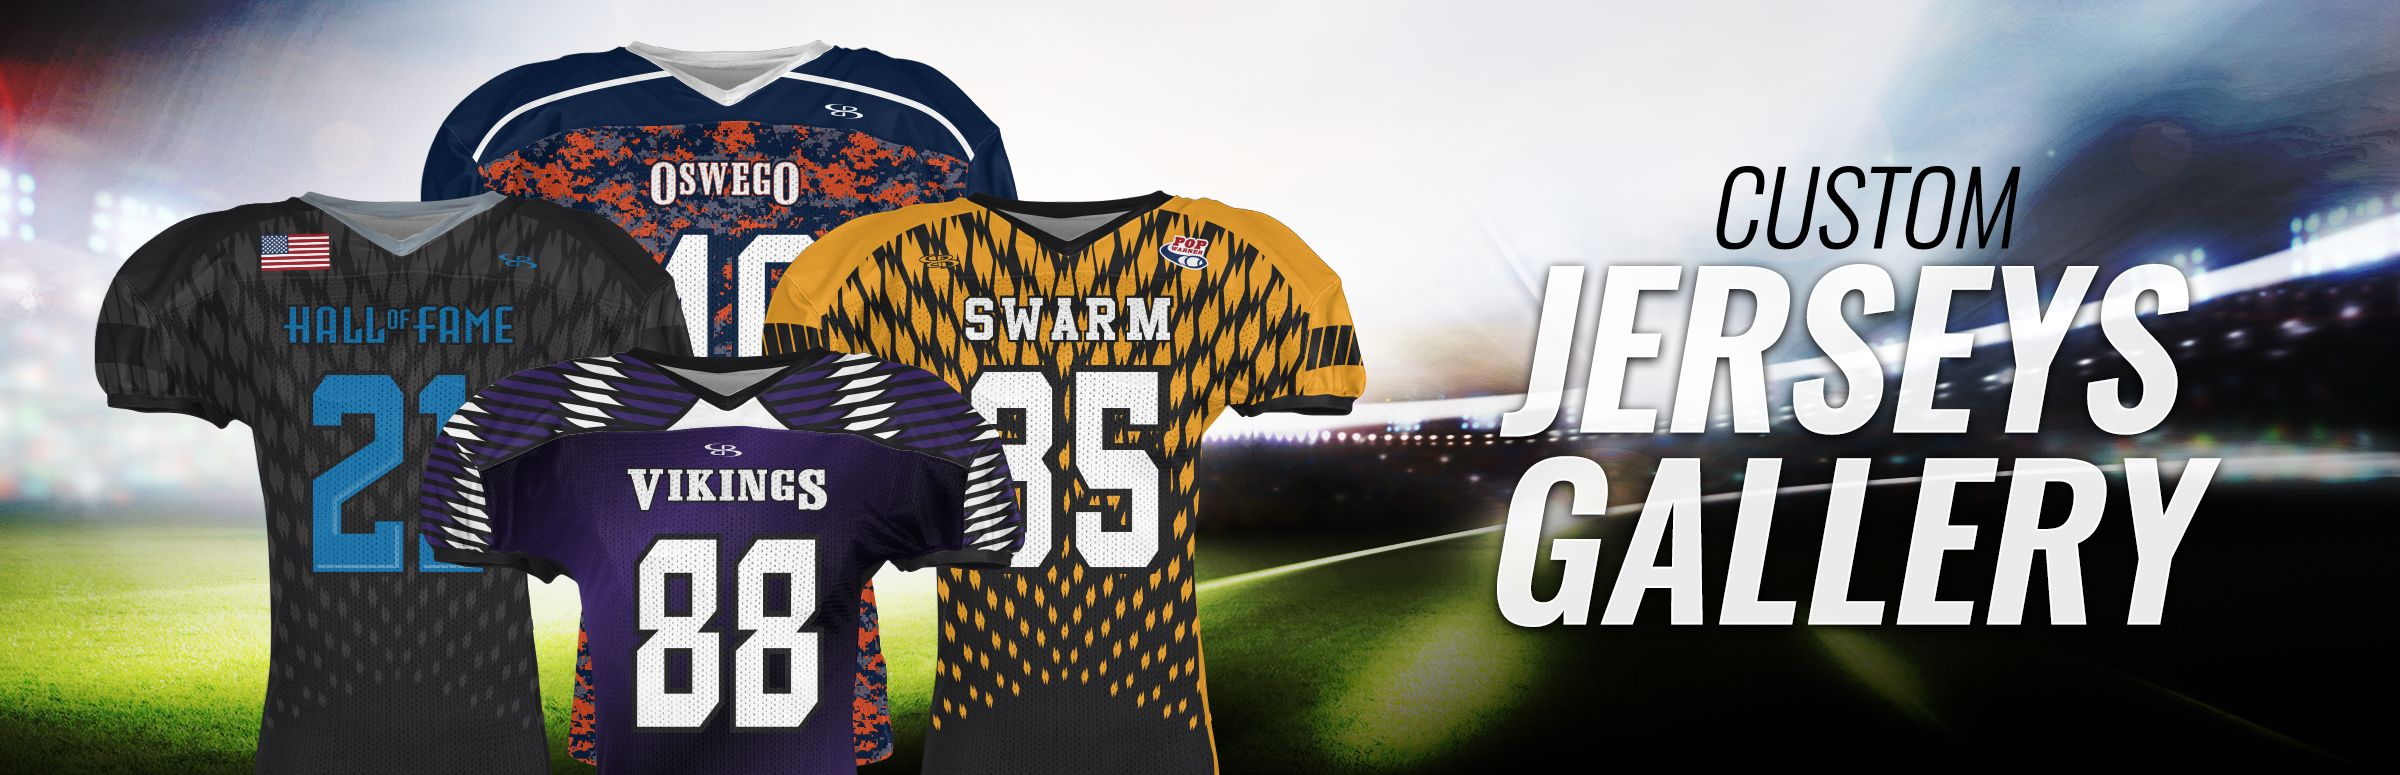 Boombah Custom Football Uniforms Gallery